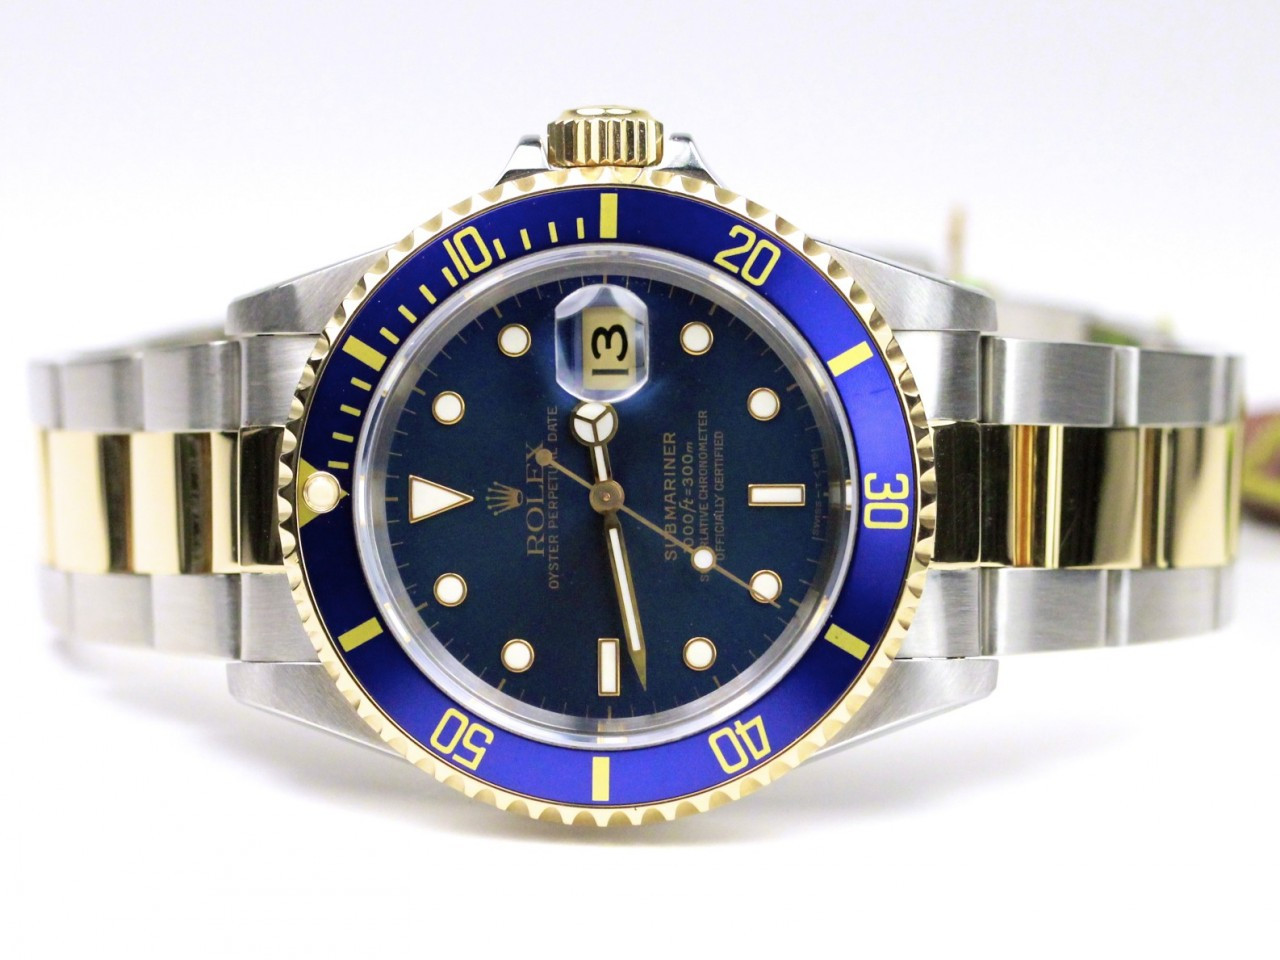 rolex bracelet submariner watches automatic dial gold mariner sub blue date s oyster watch white men